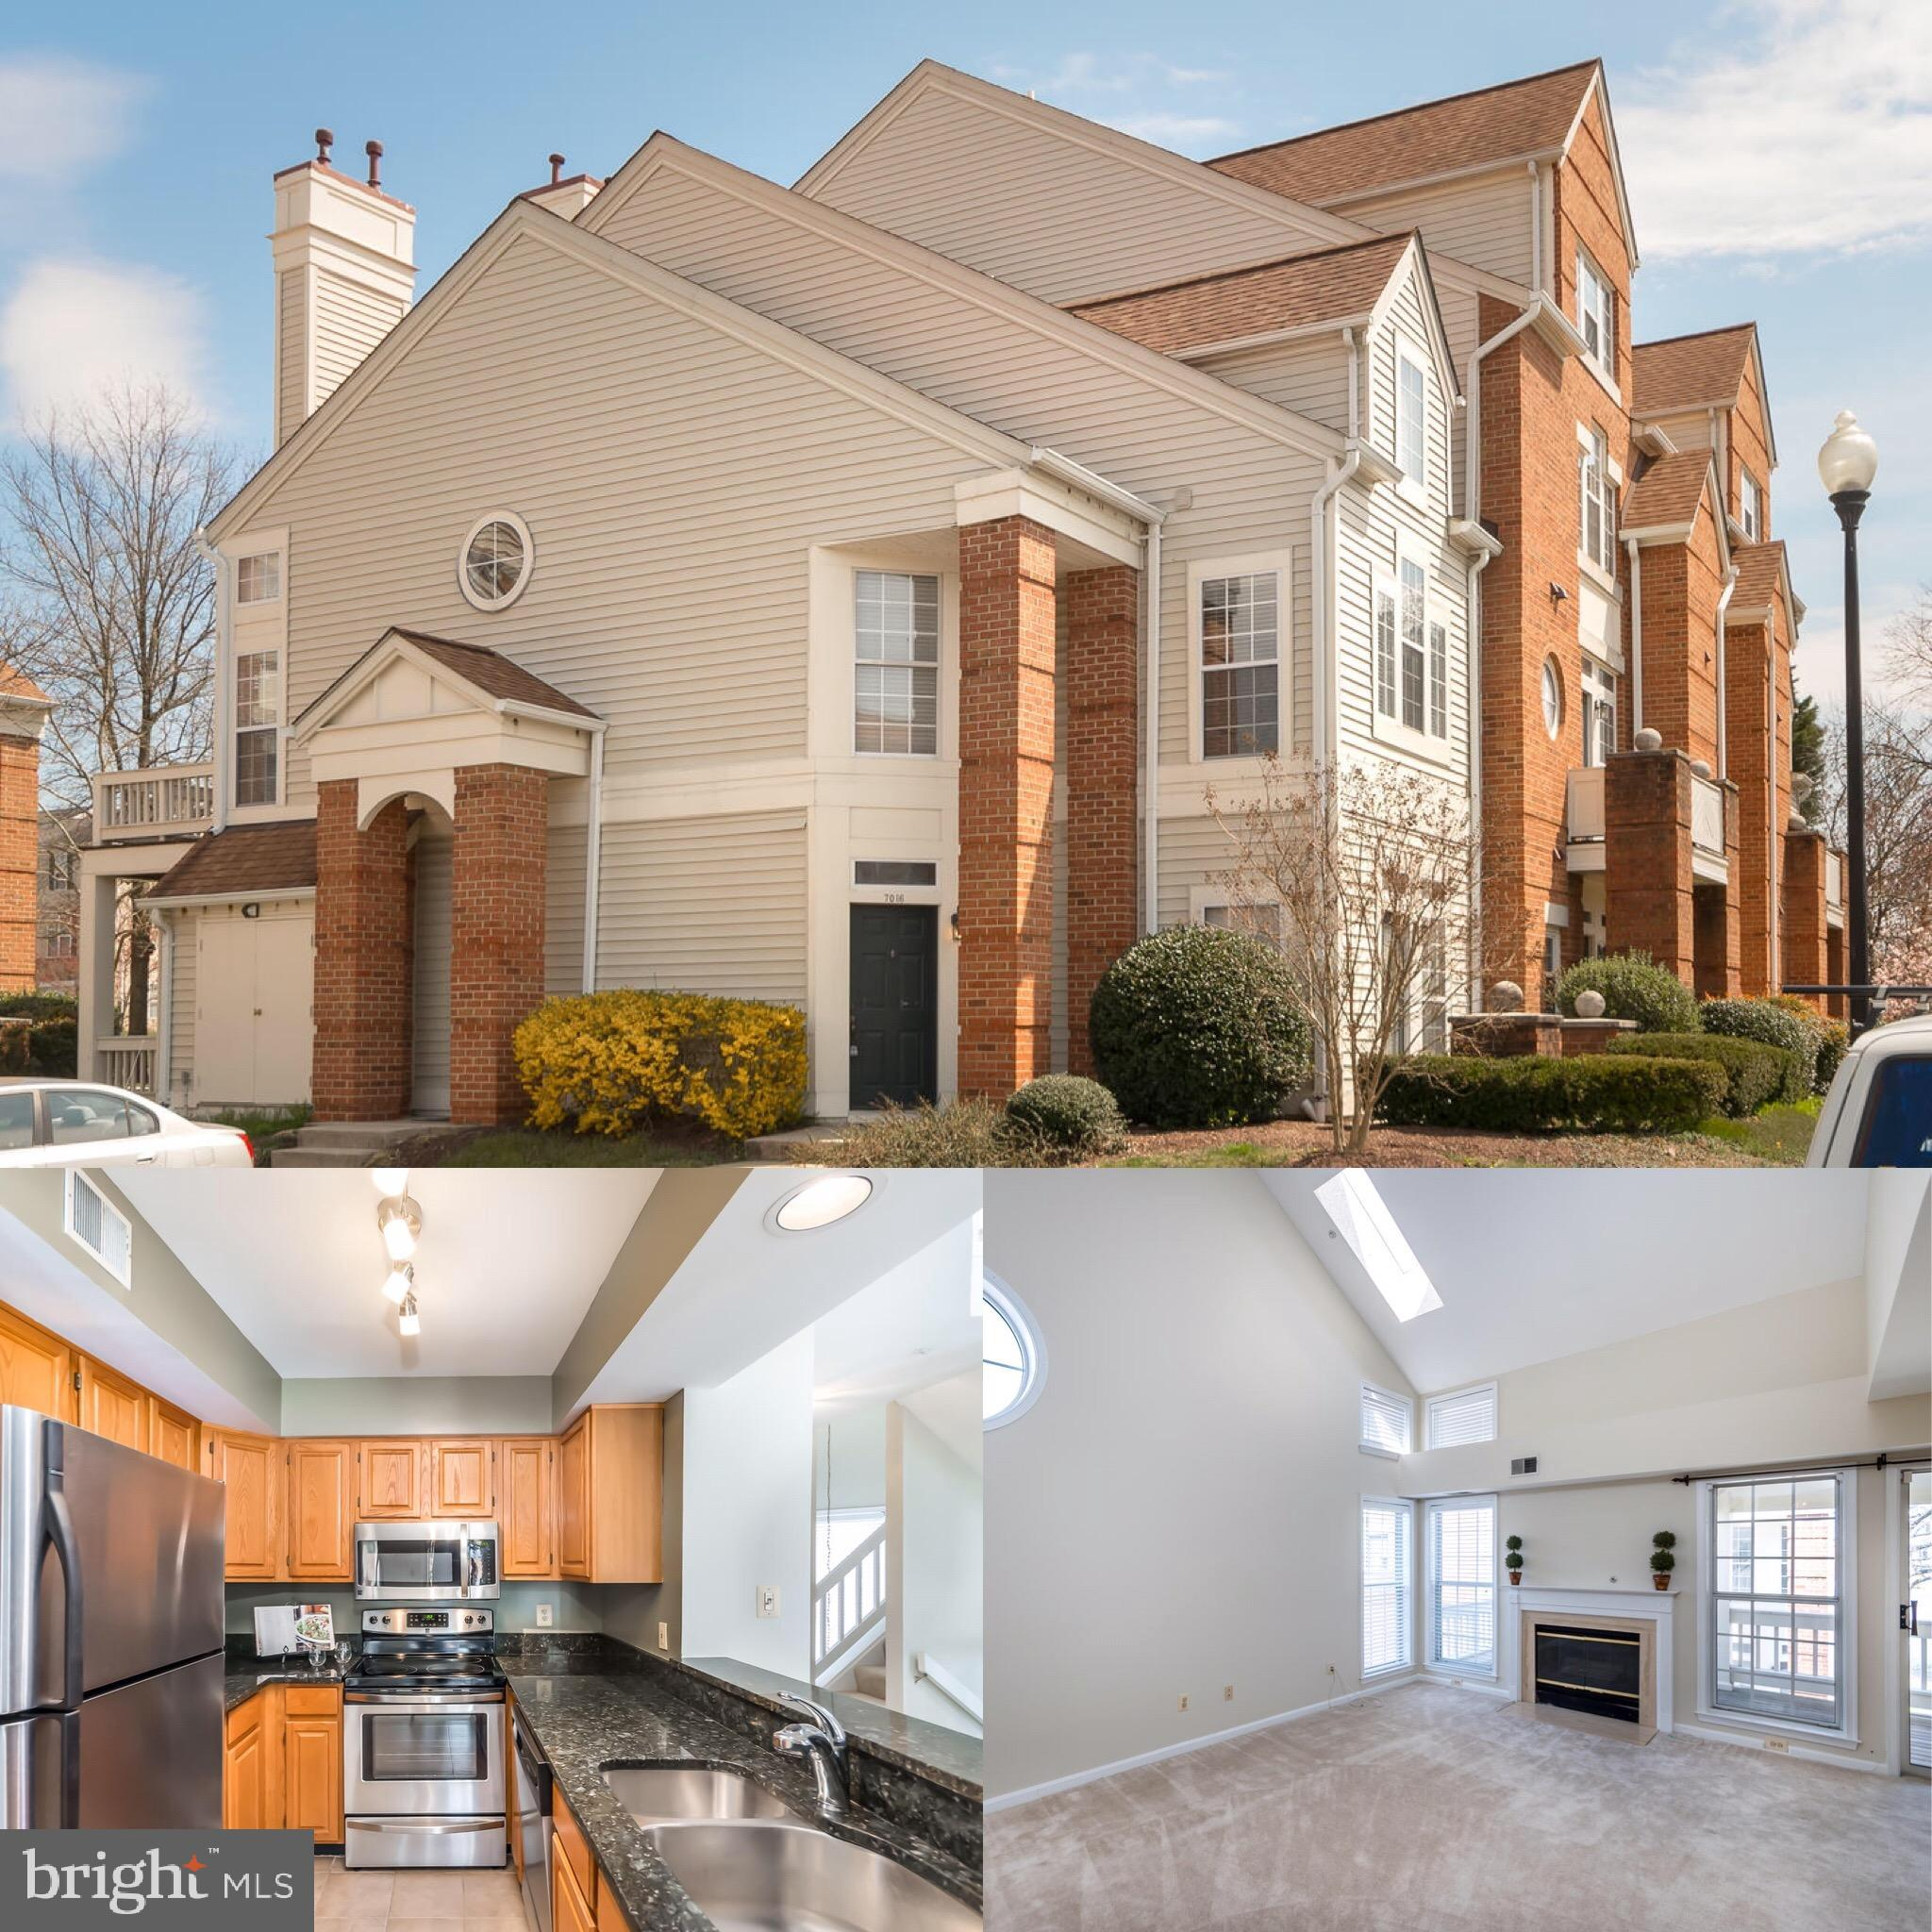 Stunning 3 Level End Unit Condo with Ground Level Entry! Sun Drenched Open Floor Plan Offers High Ceilings, Newer Carpeting, and Fresh Neutral Paint! Beautiful Granite Kitchen with Stainless Steel Appliances, Breakfast Bar, Tile Flooring, and Ample Cabinetry. Spacious Living Room with Gas Fireplace and Dining Area with Door Leading to Covered Deck! Main Level Master Suite with Two Closet and Dual Entry Bathroom. Upper Level Boasts a Second Bedroom and Full Bathroom with Dual Sink Vanity.  Stacked Washer/Dryer. Extra Secure Storage and Access to Utility/Storage Room Off Deck. Nearby Metro Station and Commuter Routes. Enjoy the Kingstowne Amenities and Across from Restaurants, Shops, Movie Theatre, and More!